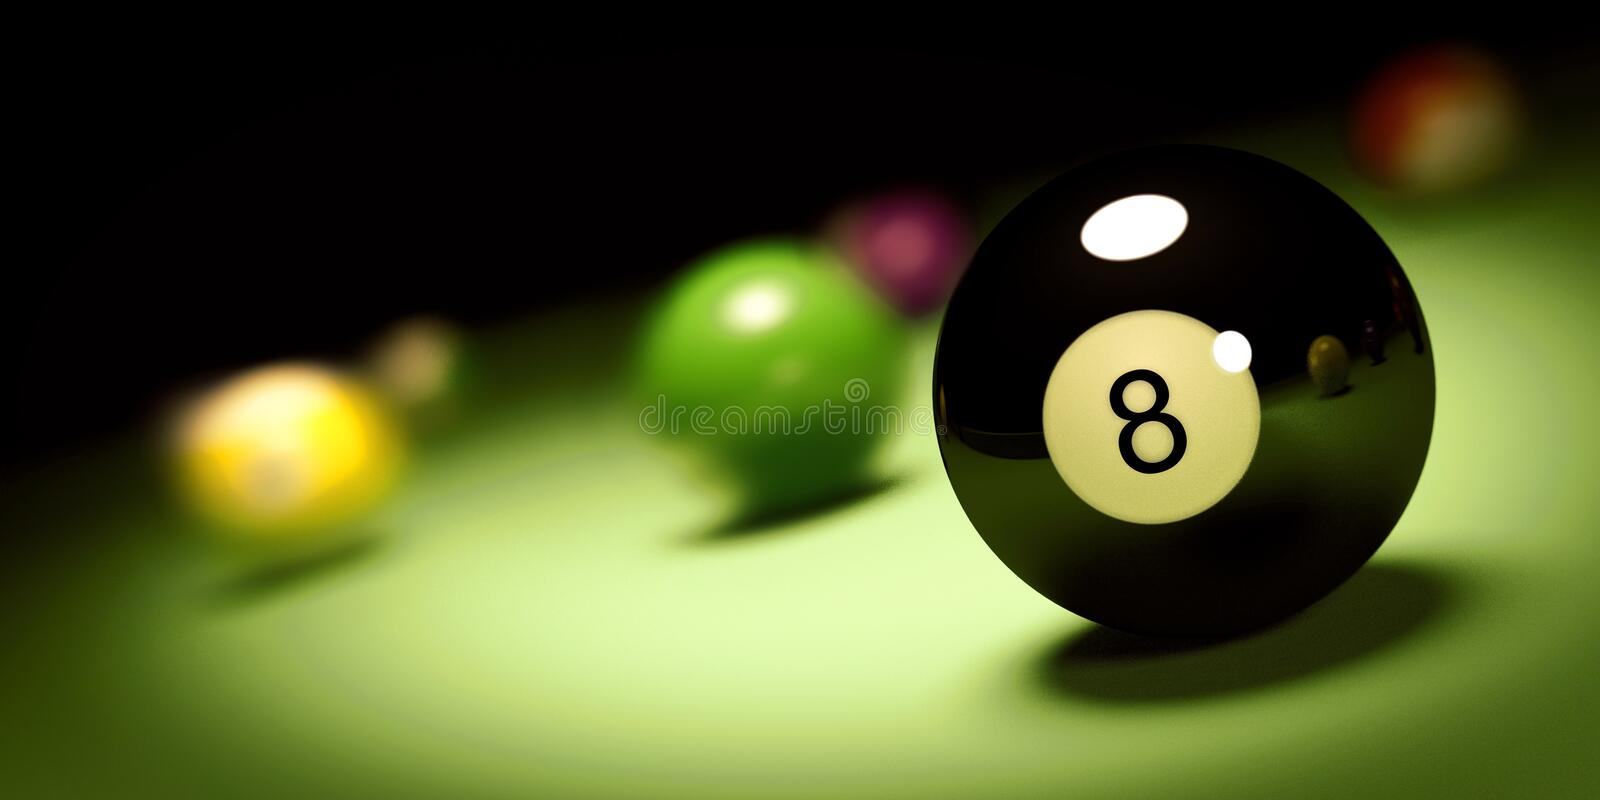 Ball n. 8 on a pool table 3d render. 3d render of a ball n. 8 on a pool table stock illustration